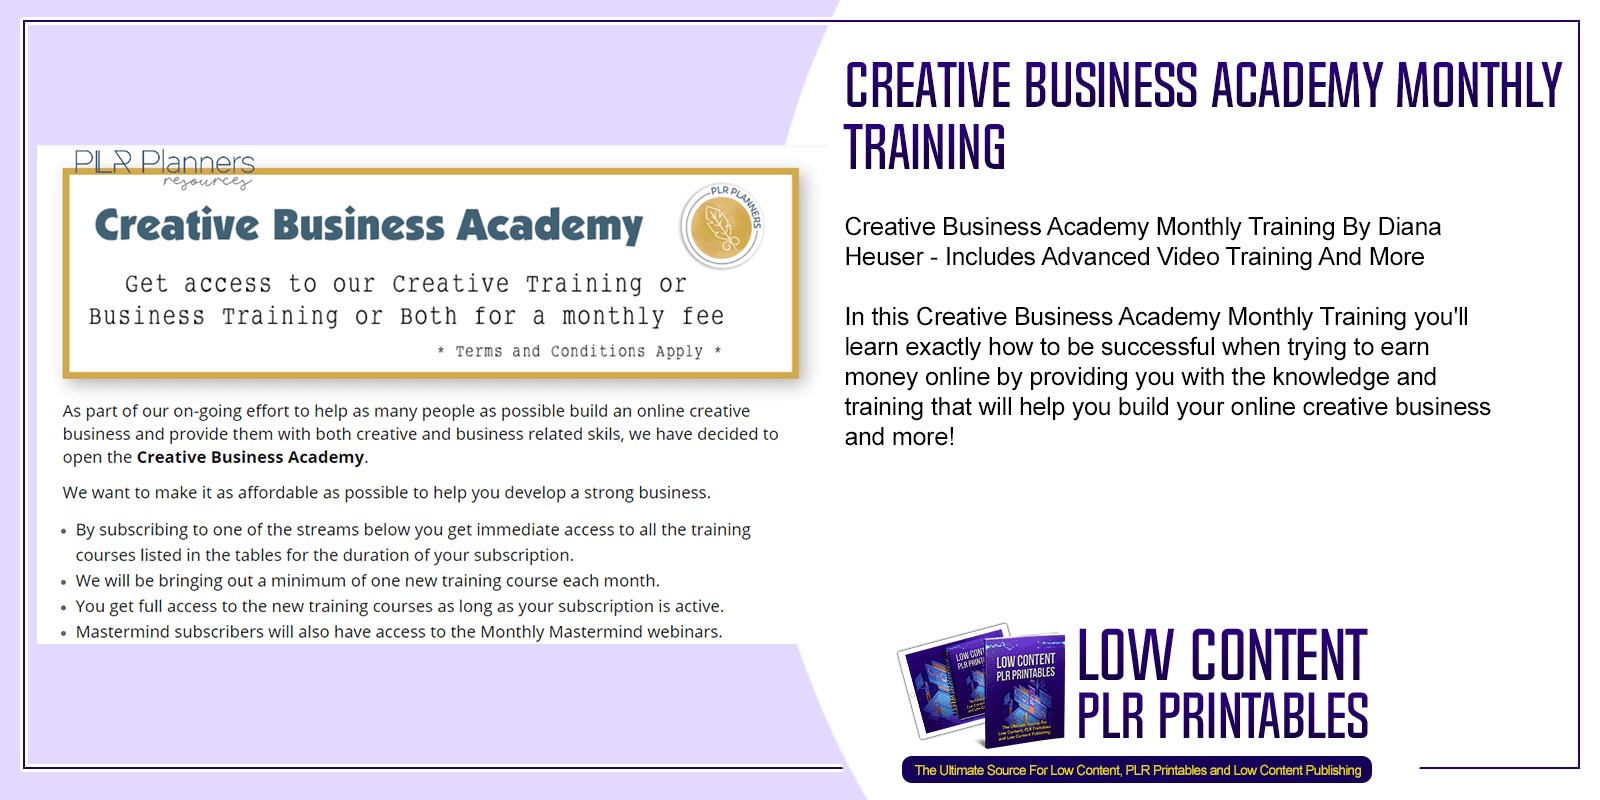 Creative Business Academy Monthly Training